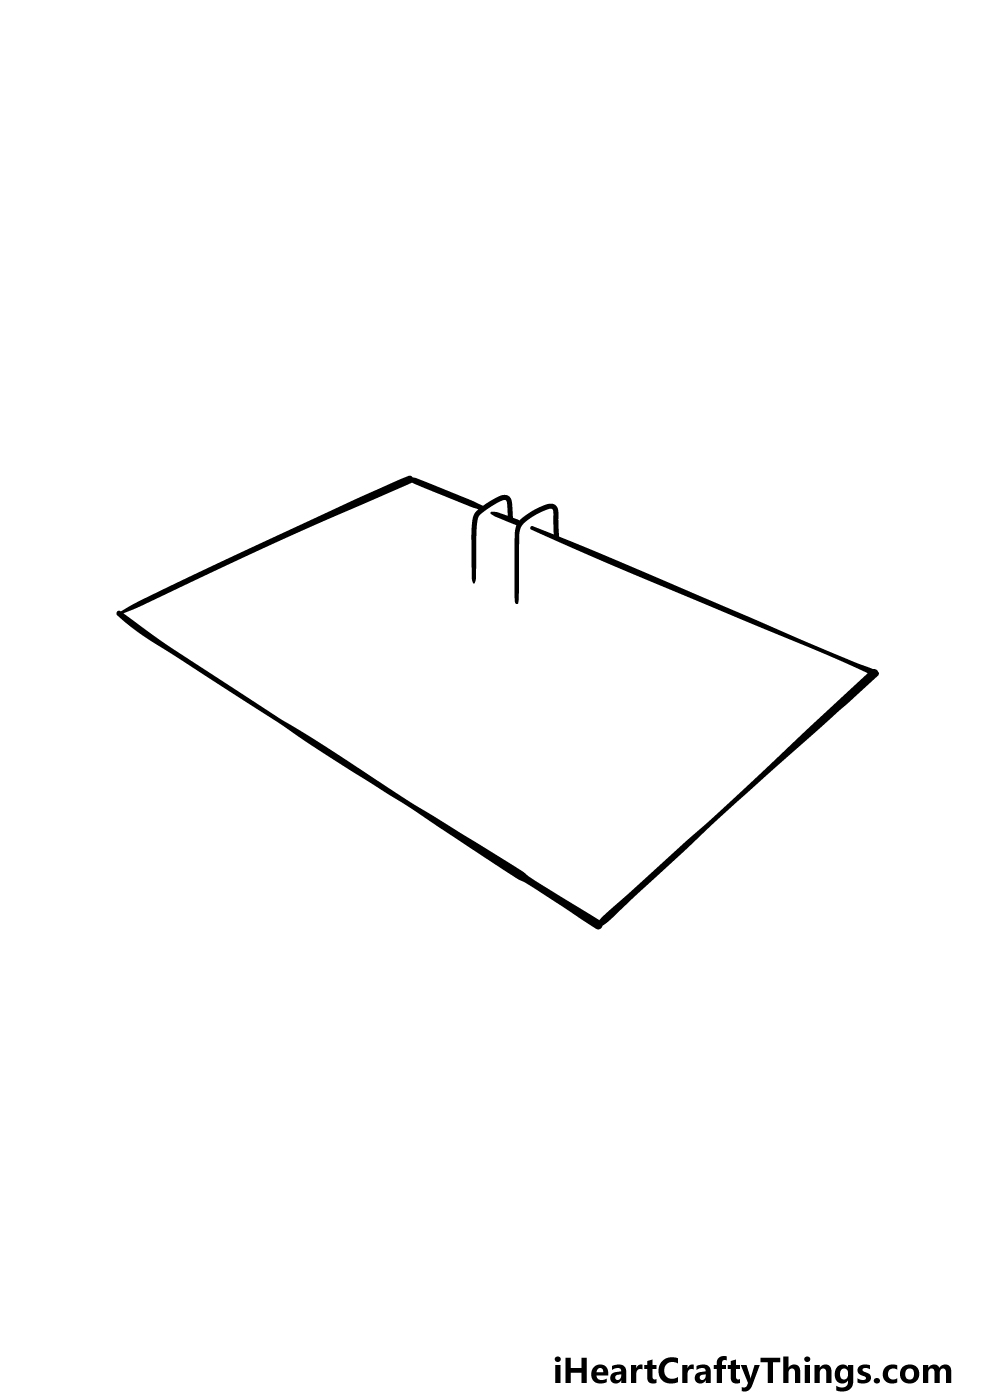 drawing a pool step 1